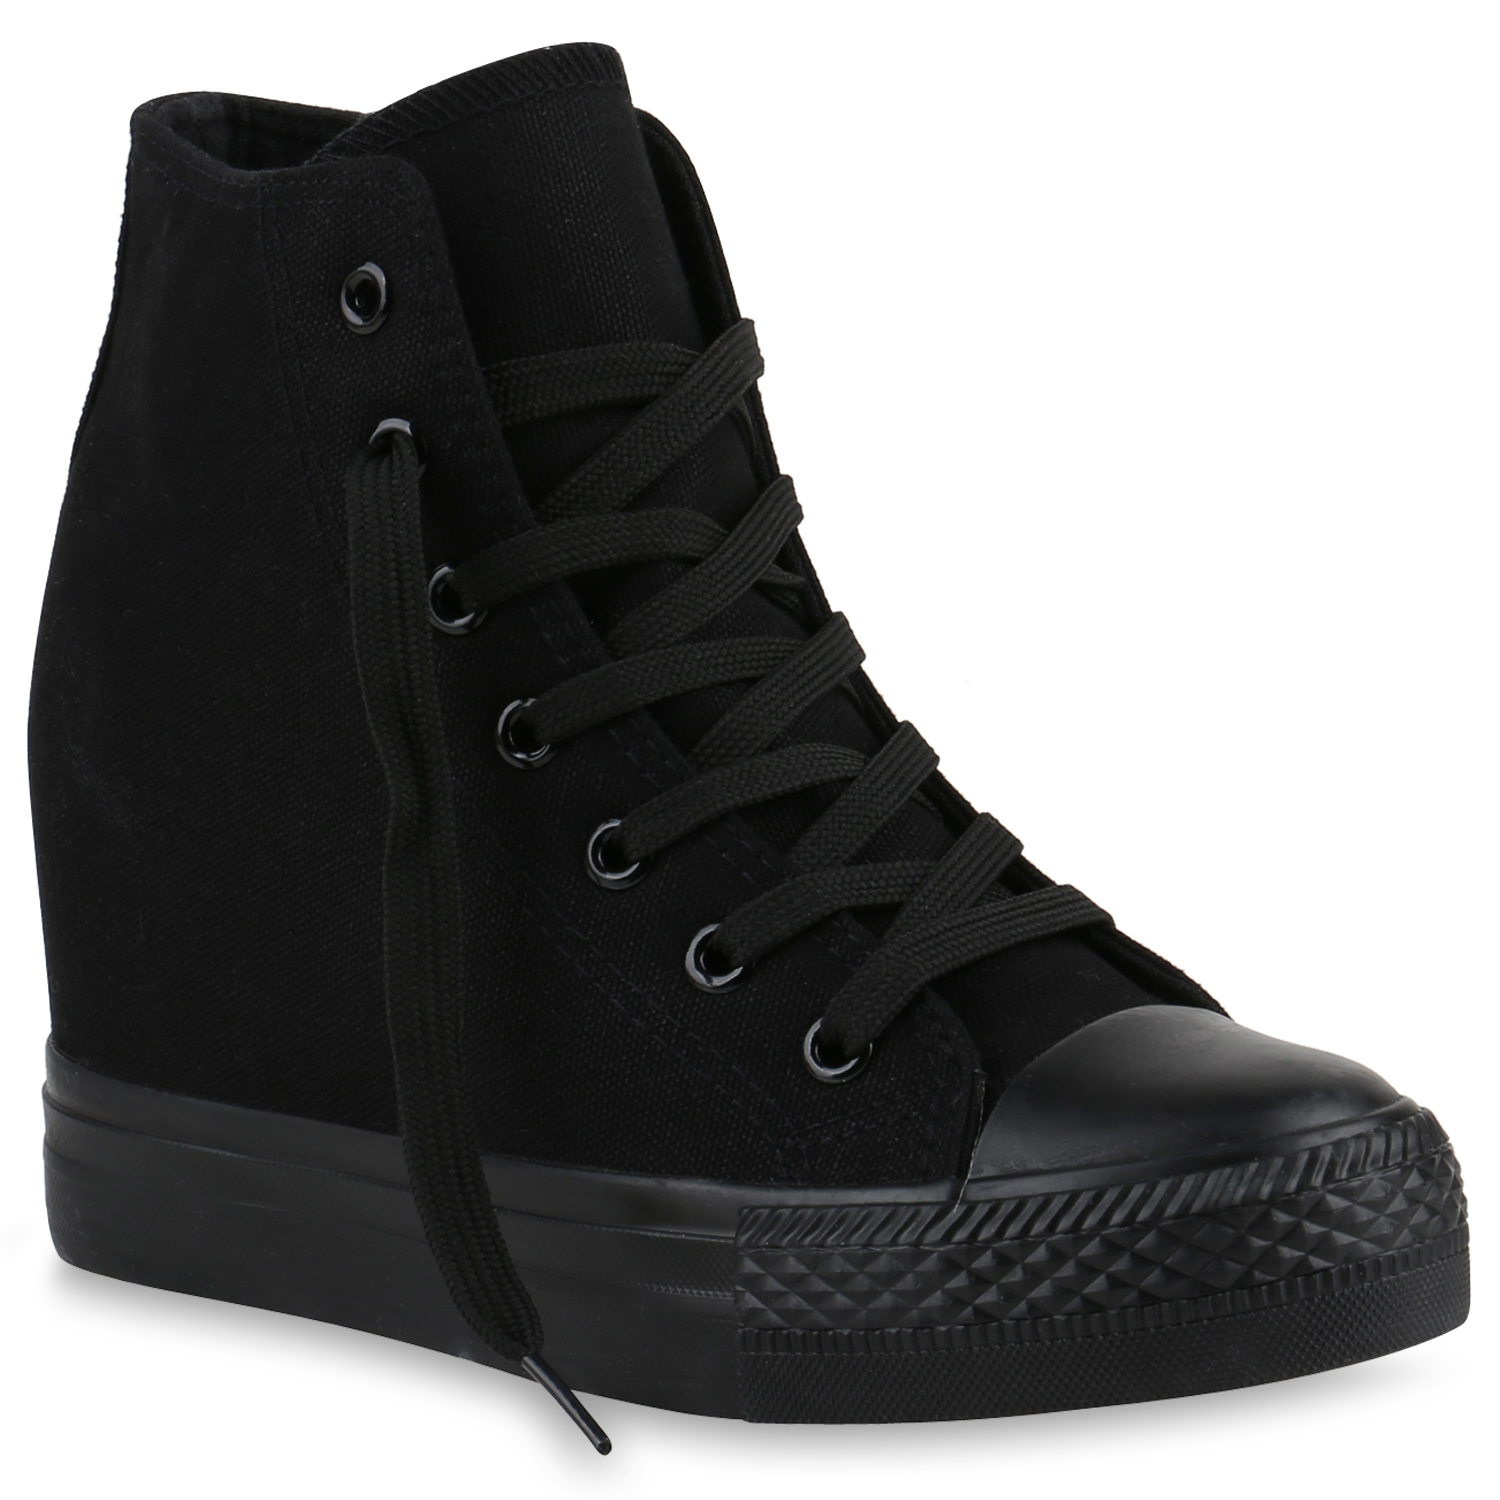 damen kinder herren sneakers keilabsatz sneaker wedges stoffschuhe 816724 schuhe ebay. Black Bedroom Furniture Sets. Home Design Ideas